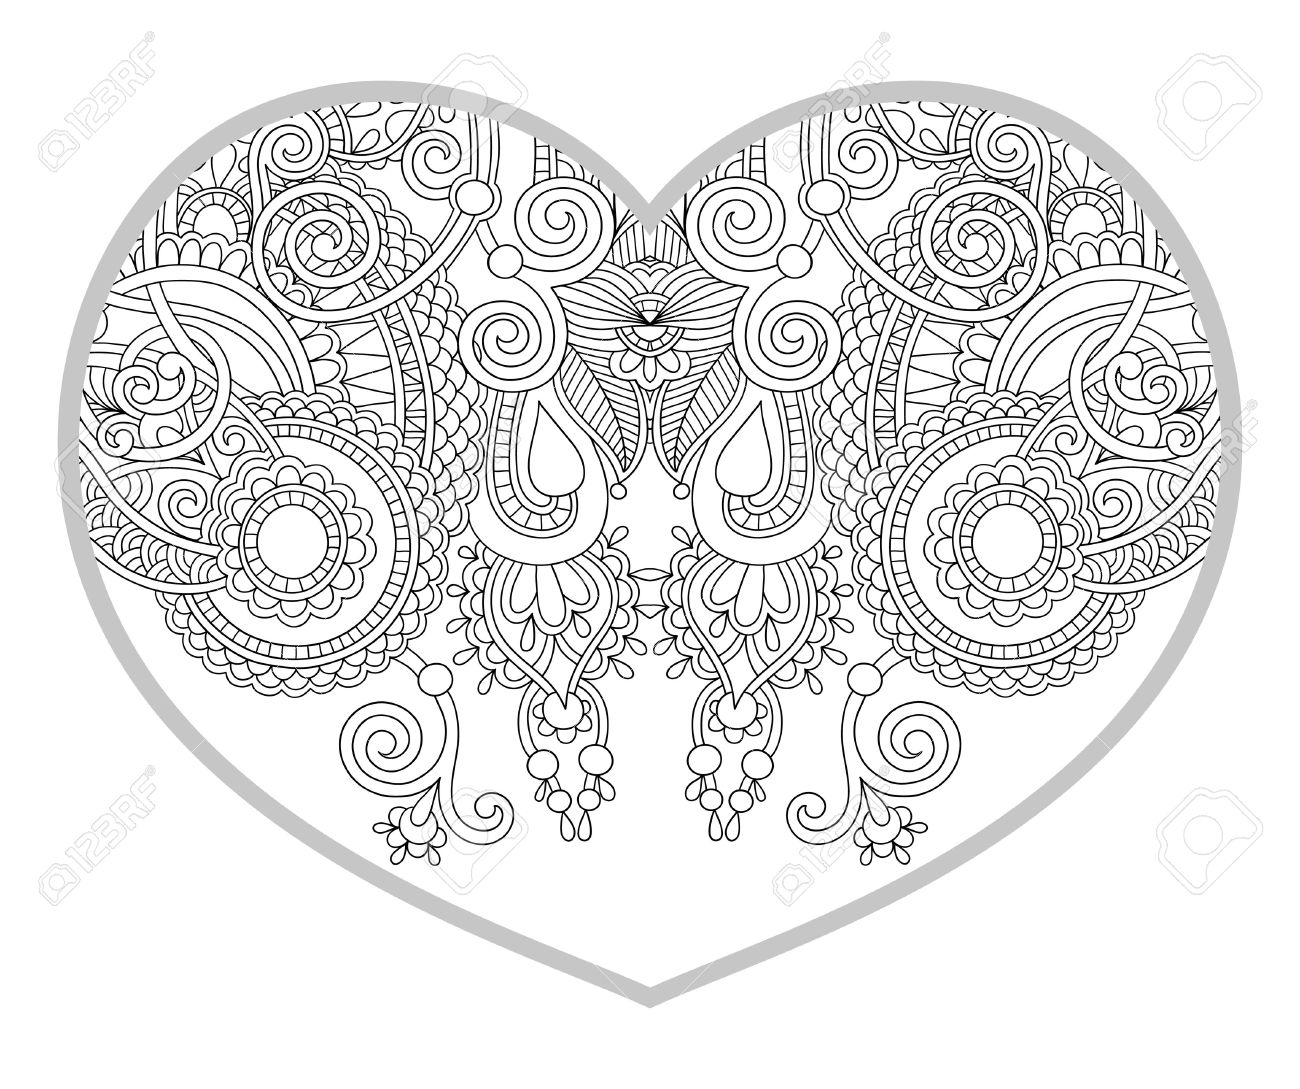 Zen coloring books for children - Vector Heart Shaped Pattern For Adult And Older Children Coloring Book Black And White Zentangle Background For Valentines Day Greeting Card Paisley Hand